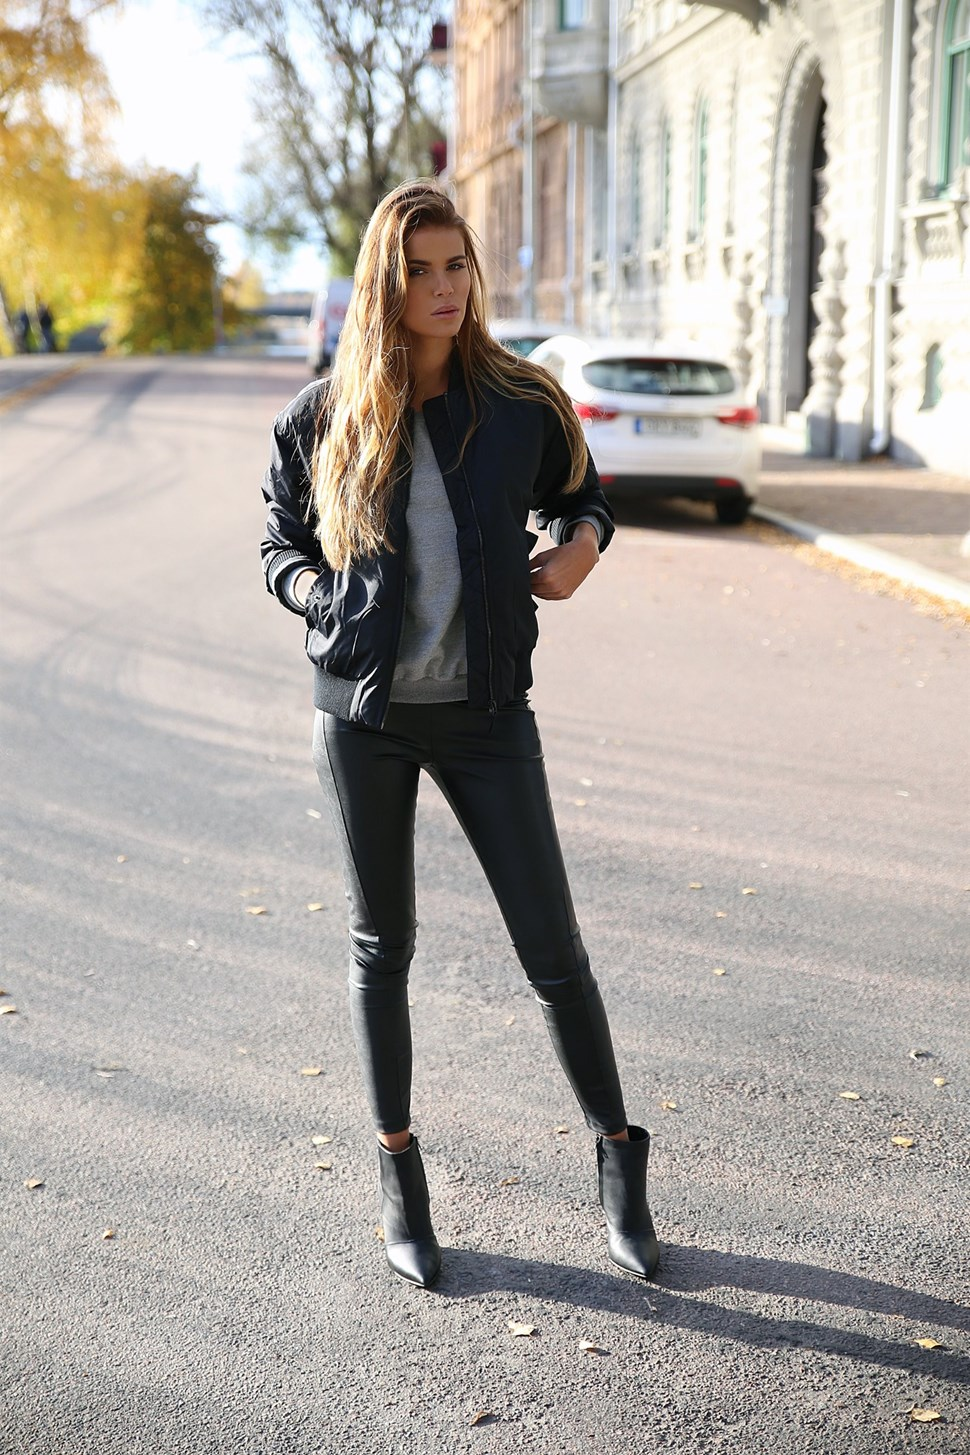 270956f8bcc Josefin Ekström keeps it casual in a black bomber jacket and matching  skinny jeans. Jacket